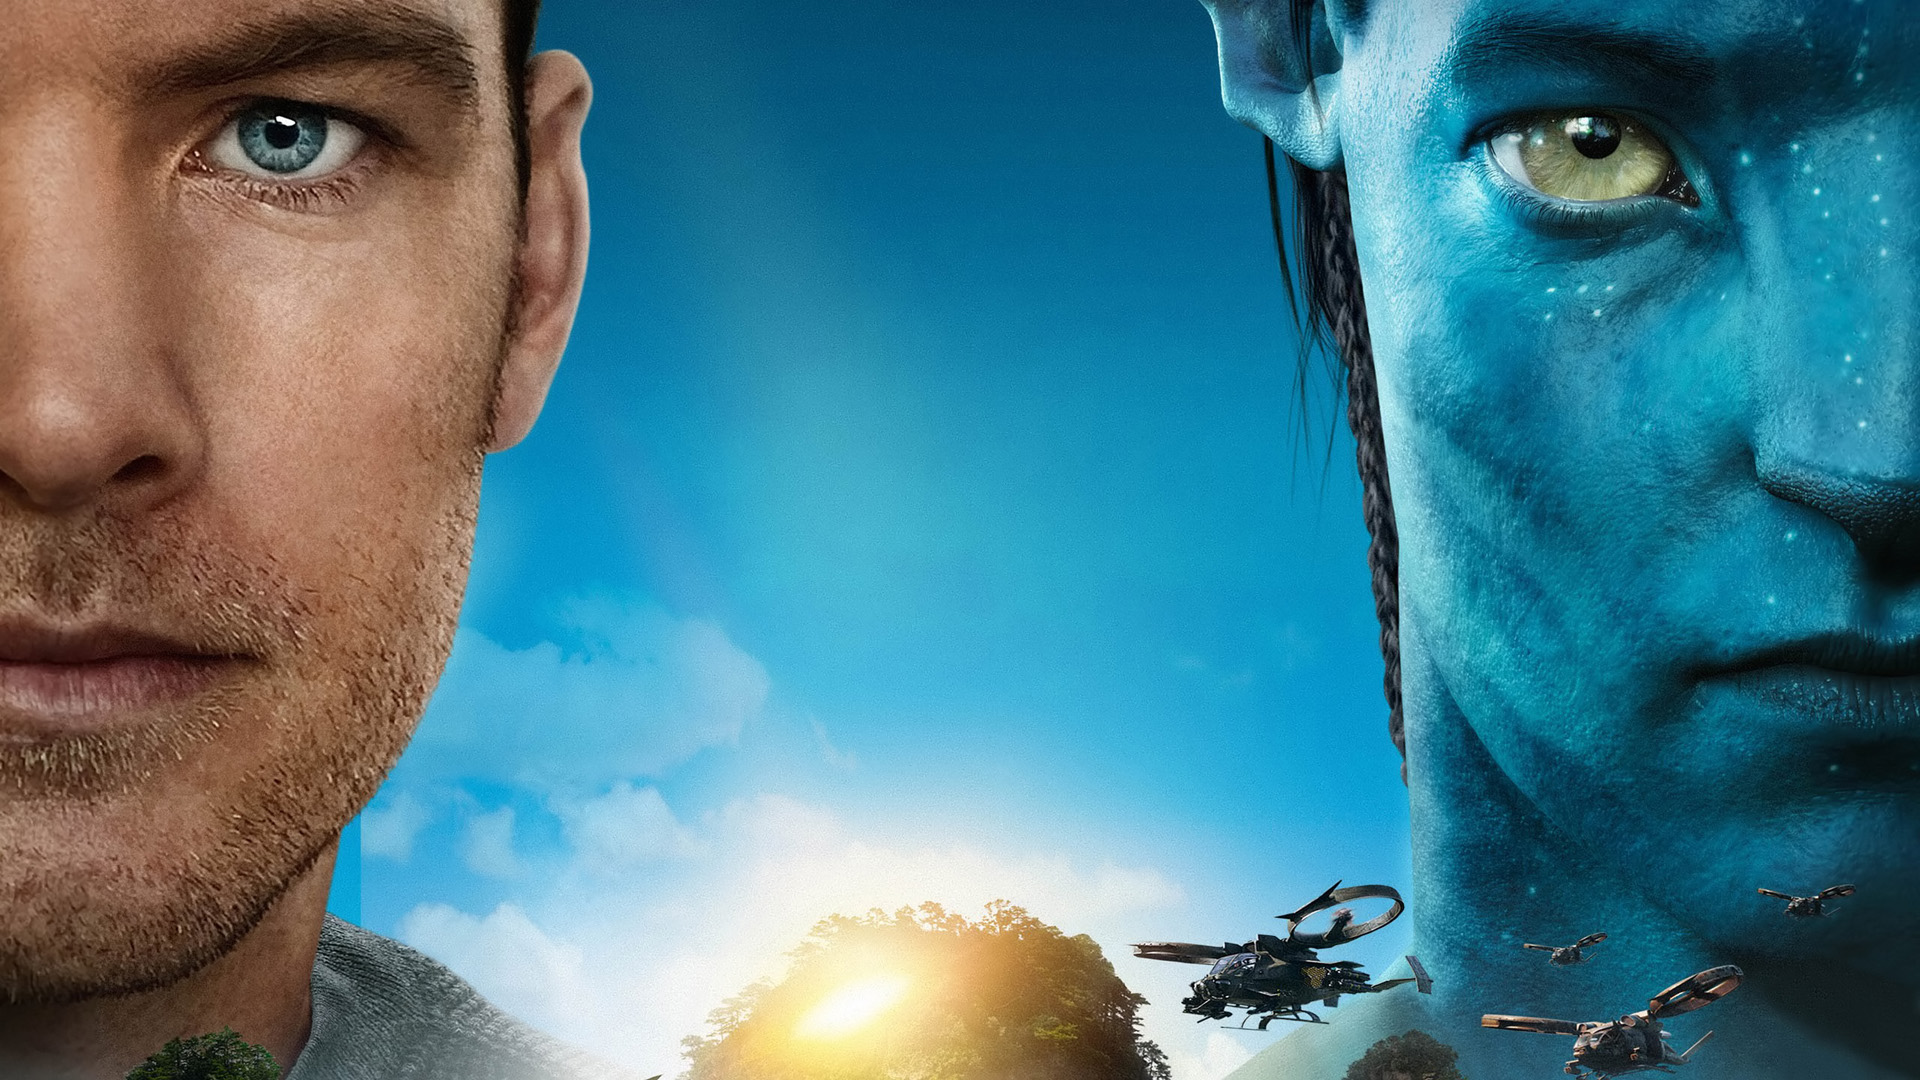 avatar movie wallpapers collection 6 1920 x 1080 pixels digital